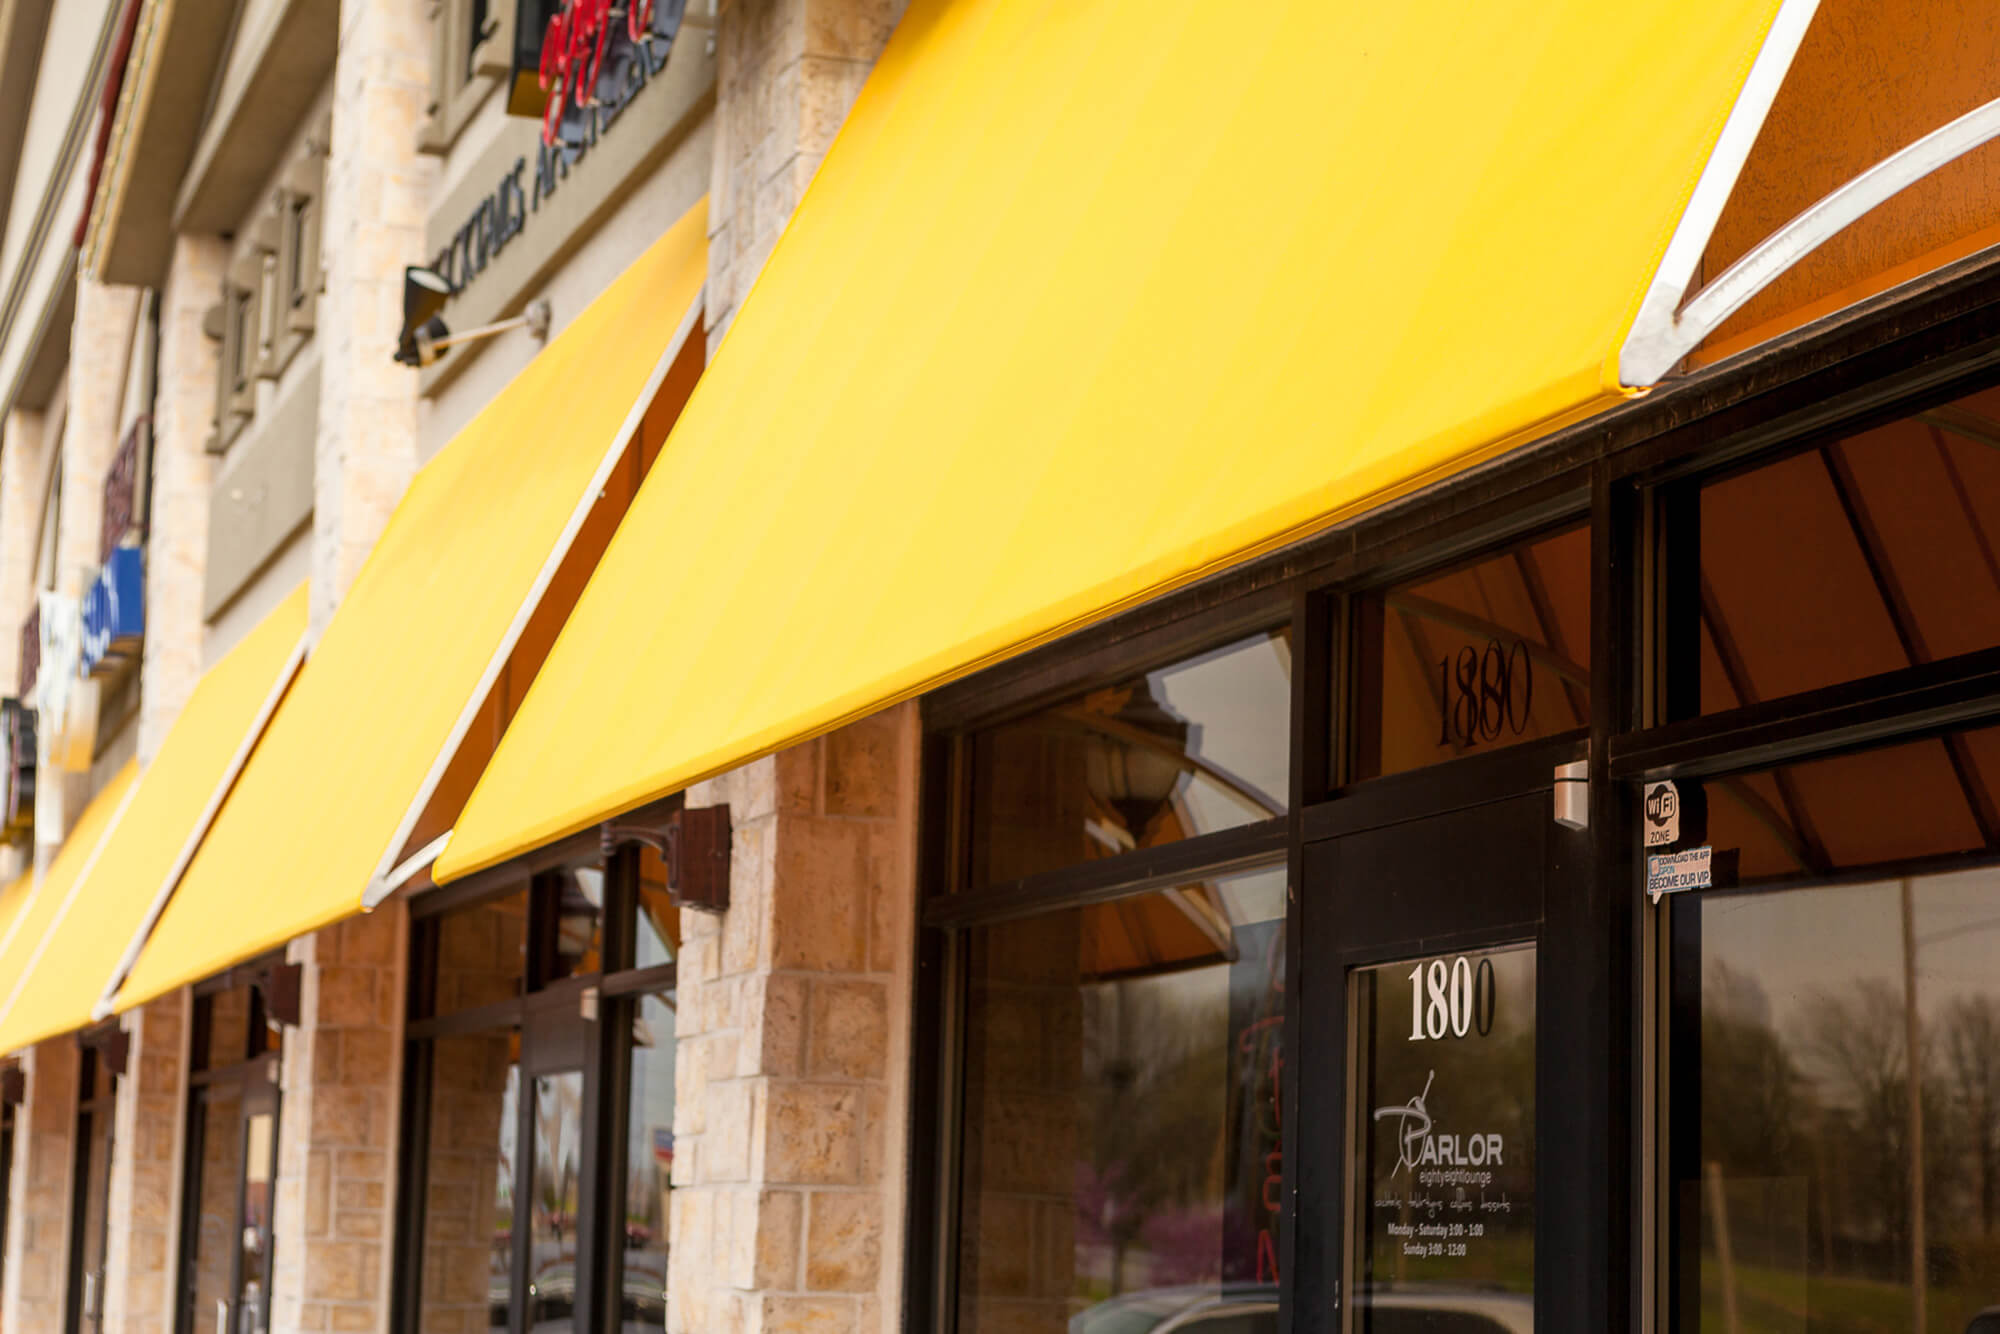 Storefront adorned with fixed frame awnings made using yellow Sunbrella fabrics